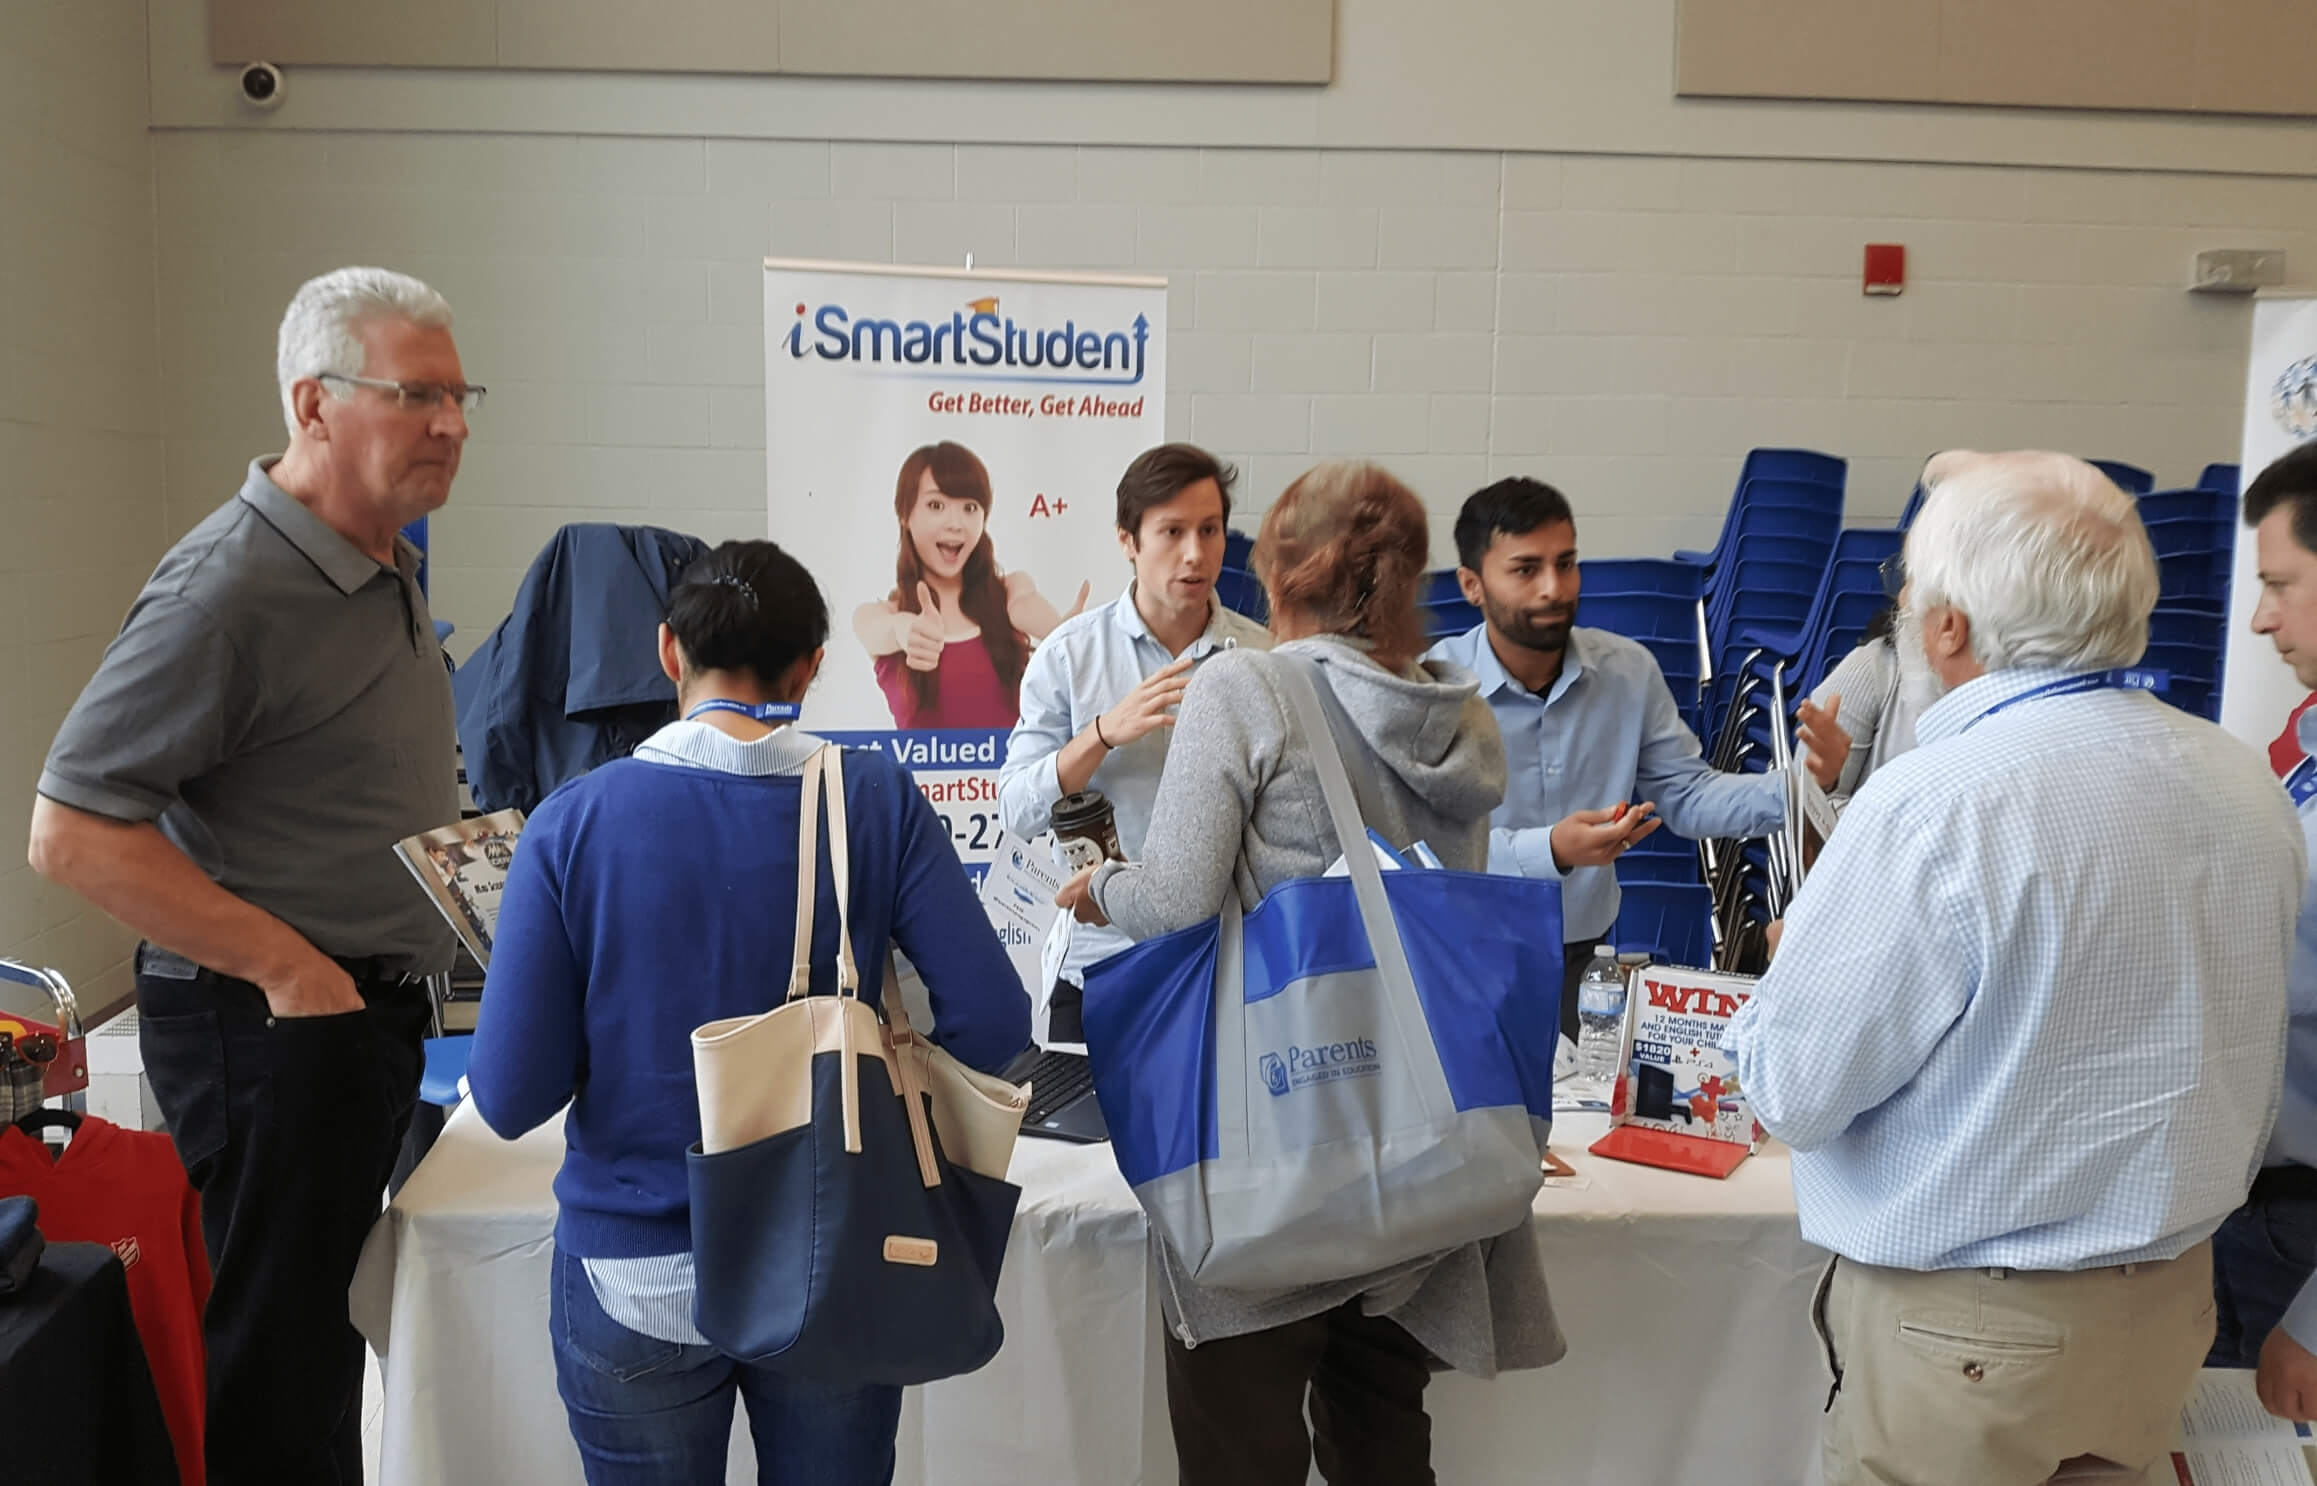 iSmartStudent meets committed parents at the Dream Big School Council Training Symposium